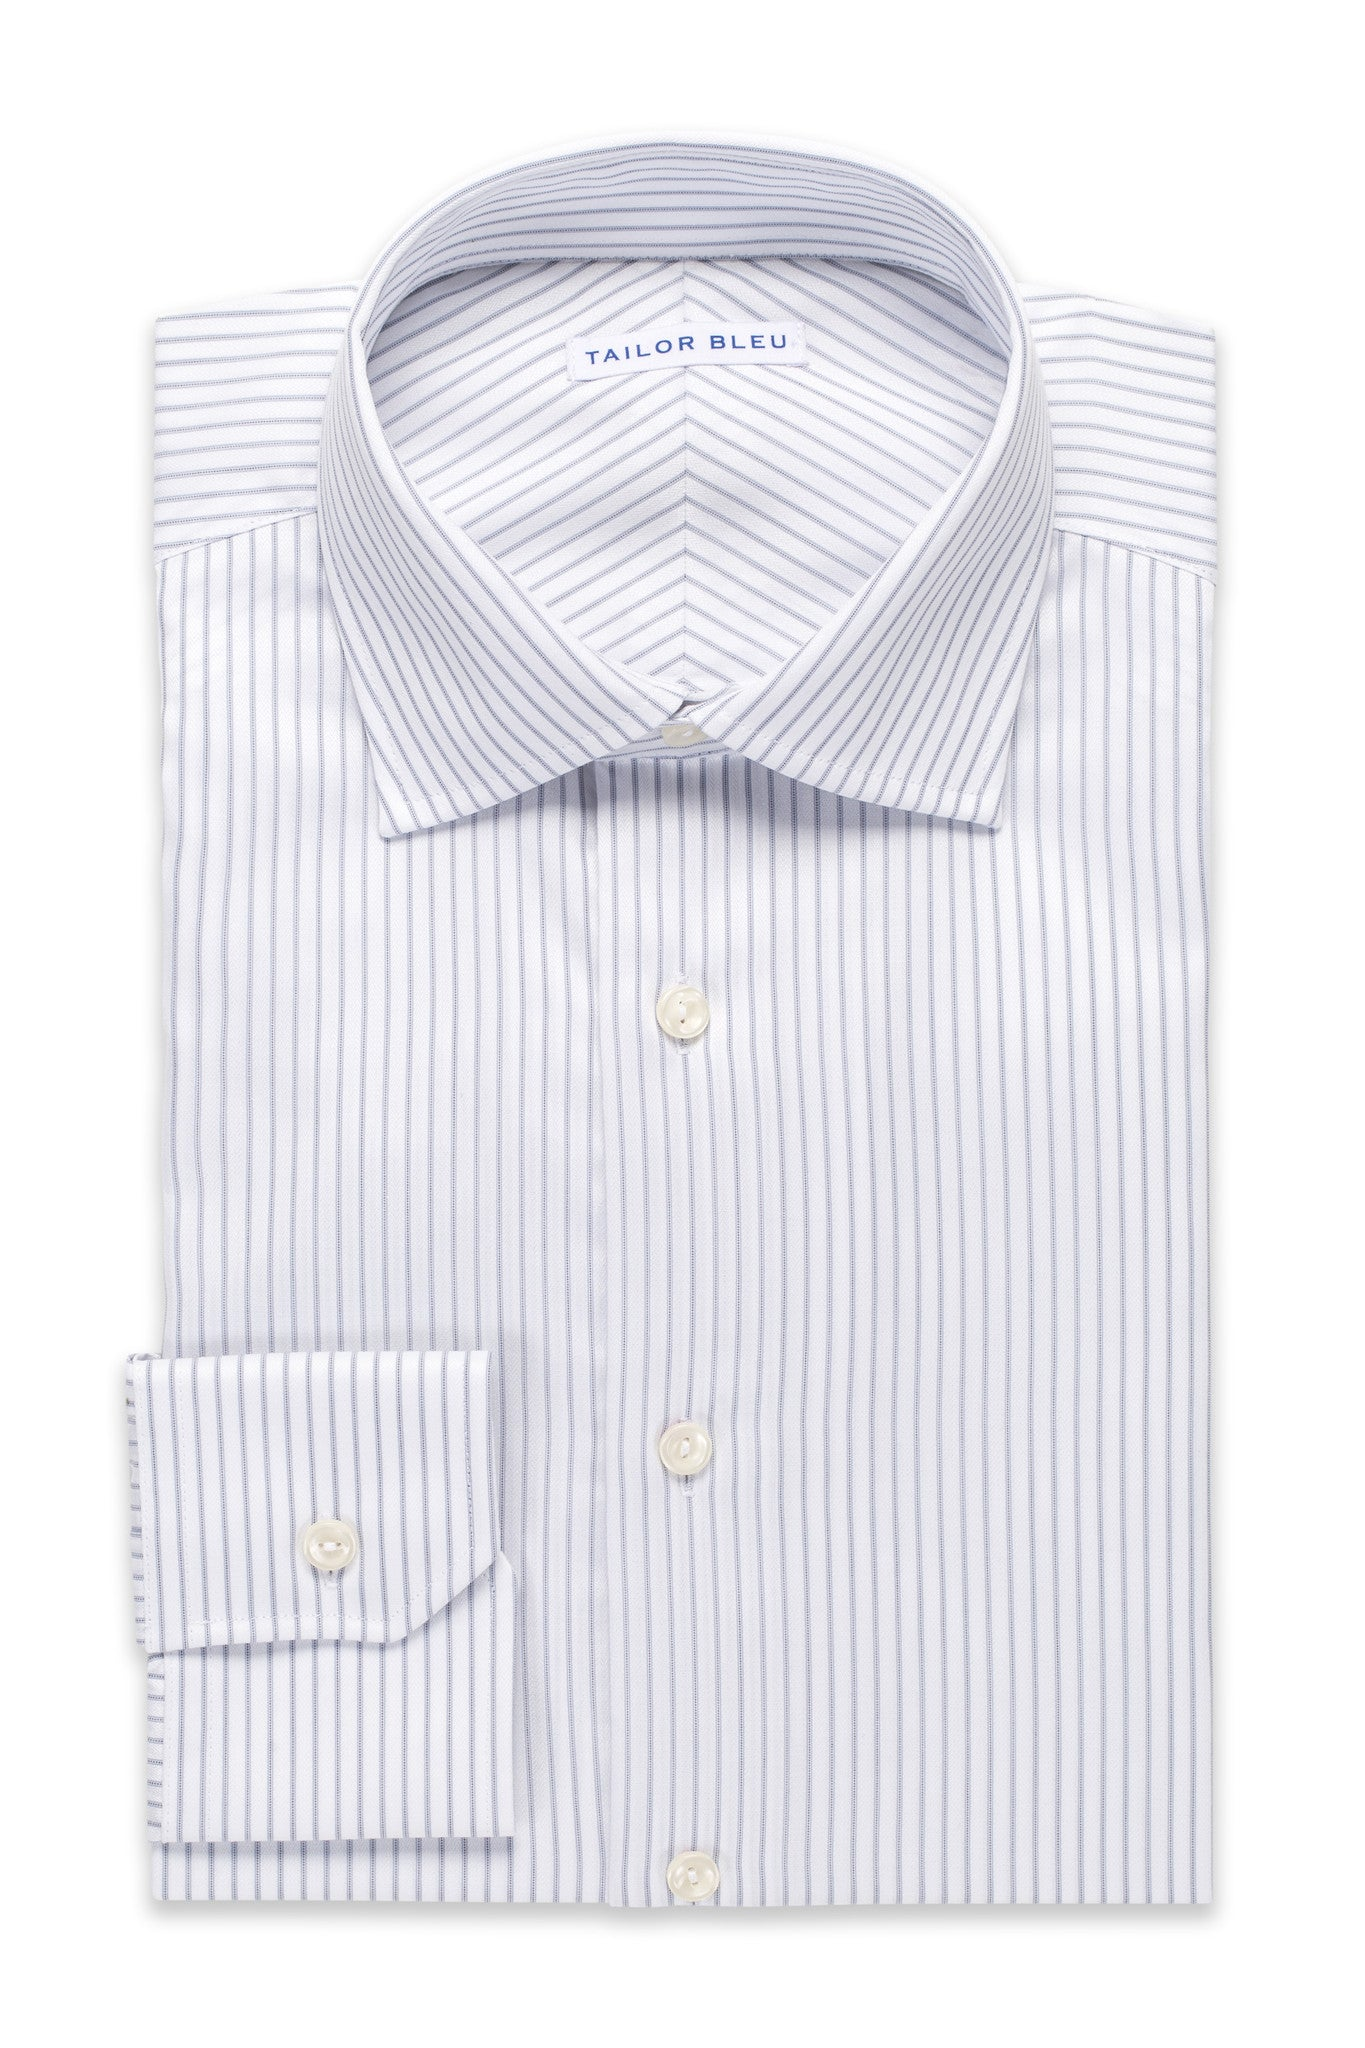 Wide Pinstripe Shirt - Round Spread Collar- Light Gray